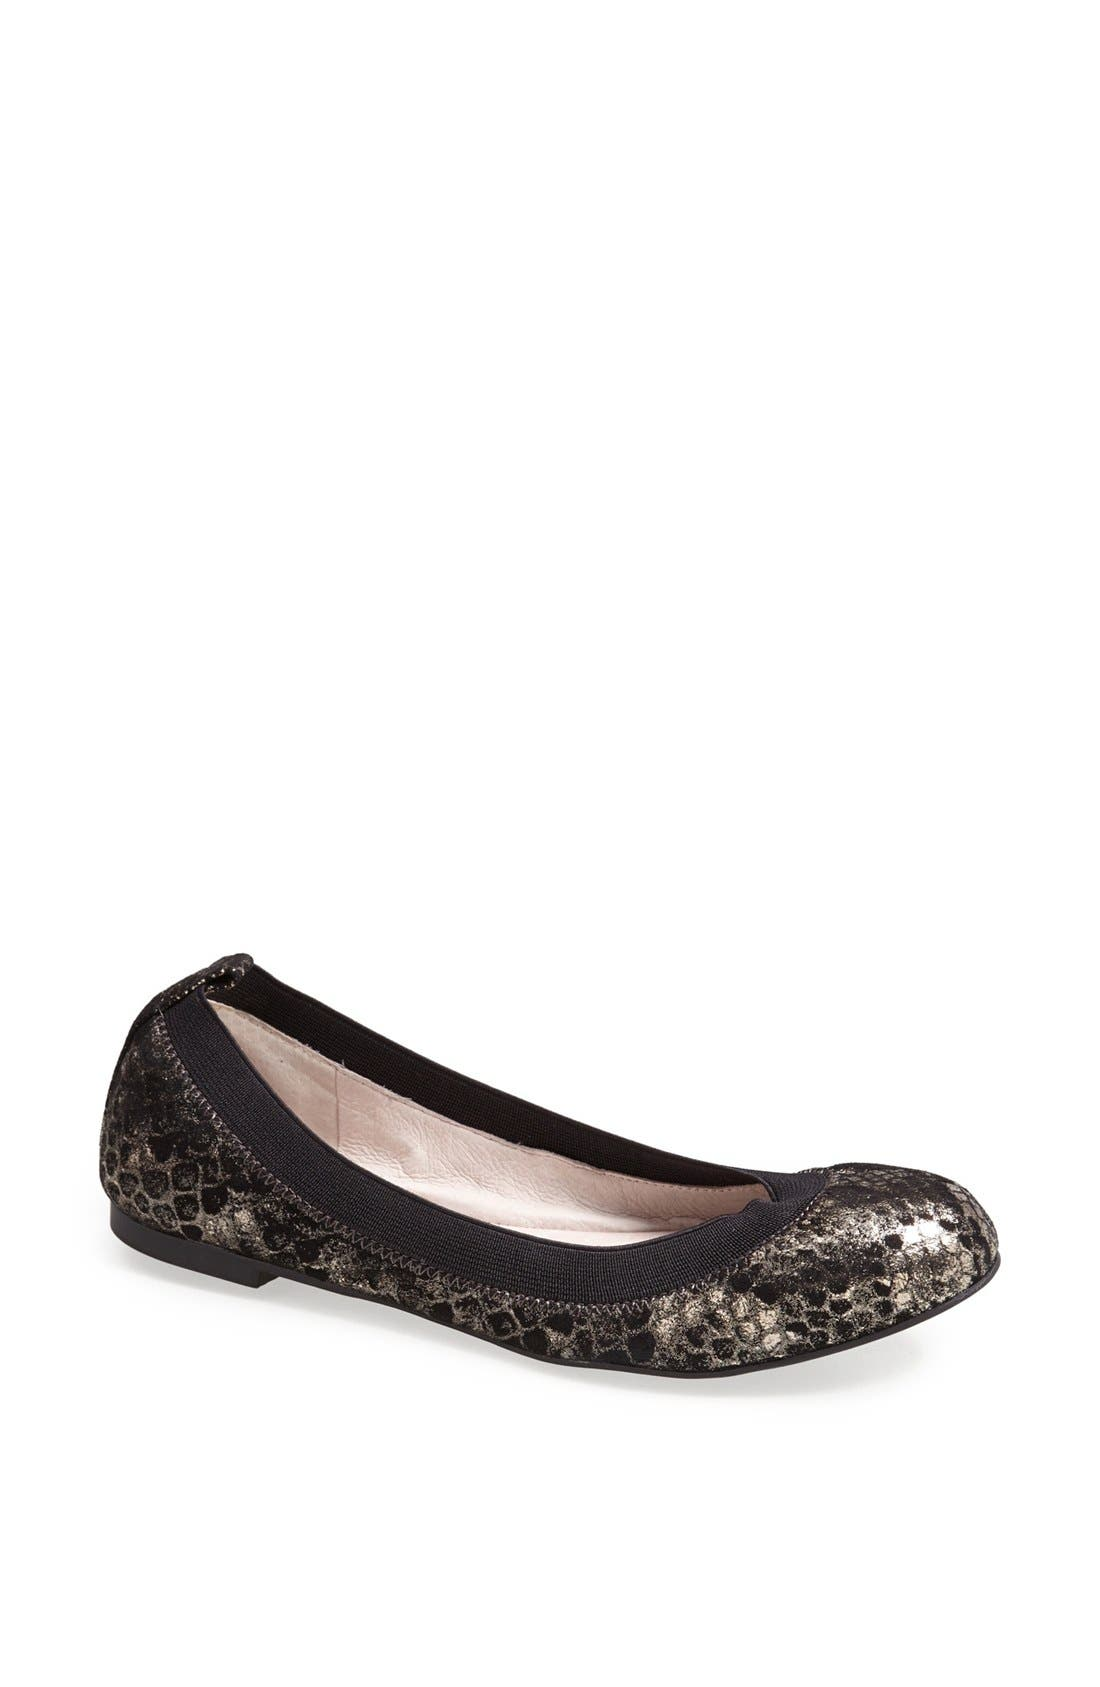 Alternate Image 1 Selected - Vince Camuto 'Jorra' Leather Flat